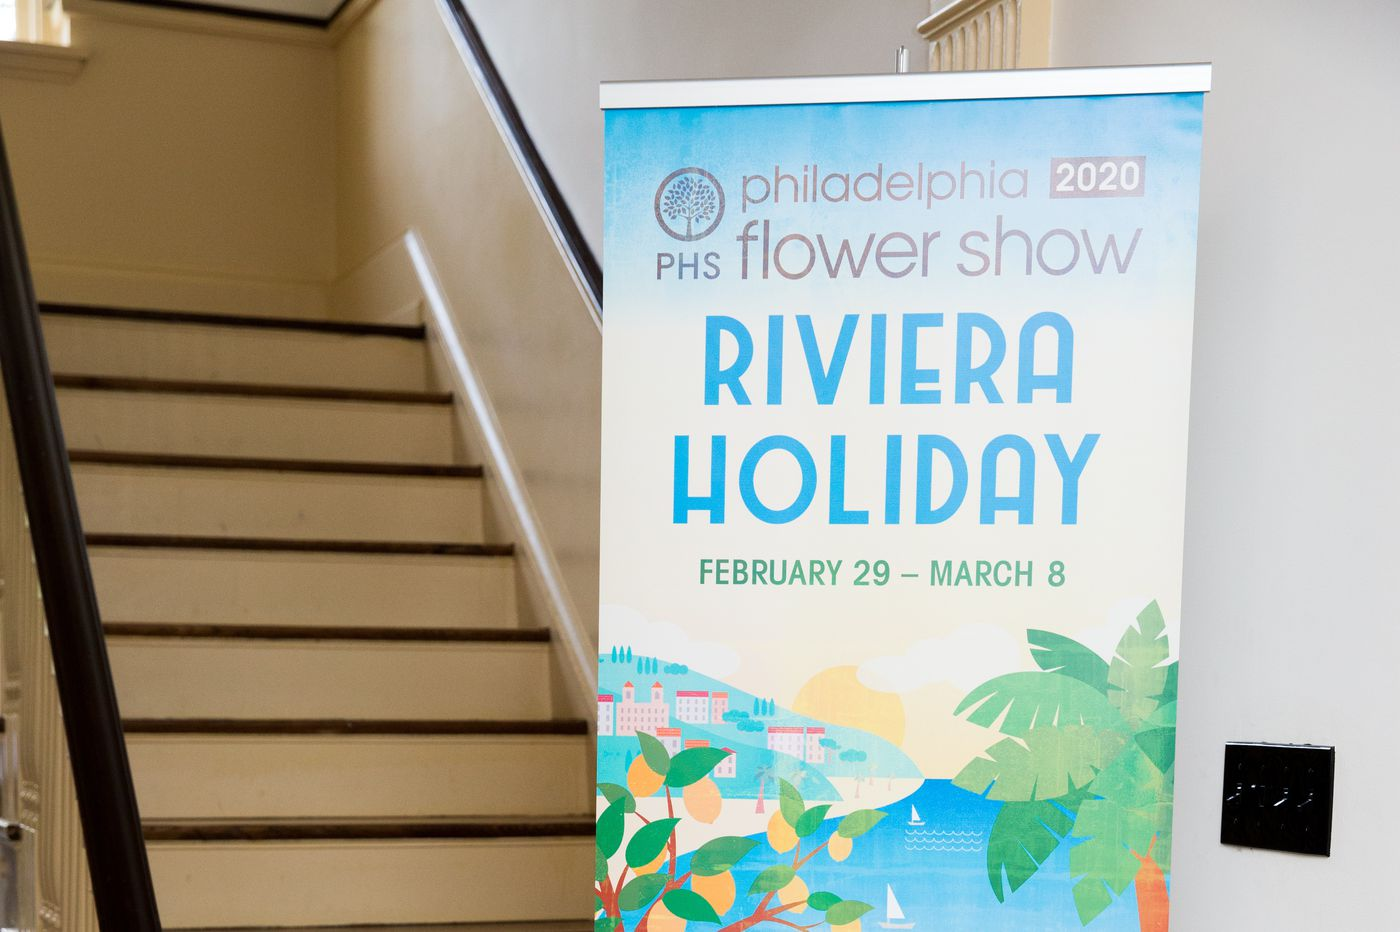 The 2020 Philadelphia Flower Show's 'Riviera Holiday' theme is an abdication of responsibility | Opinion